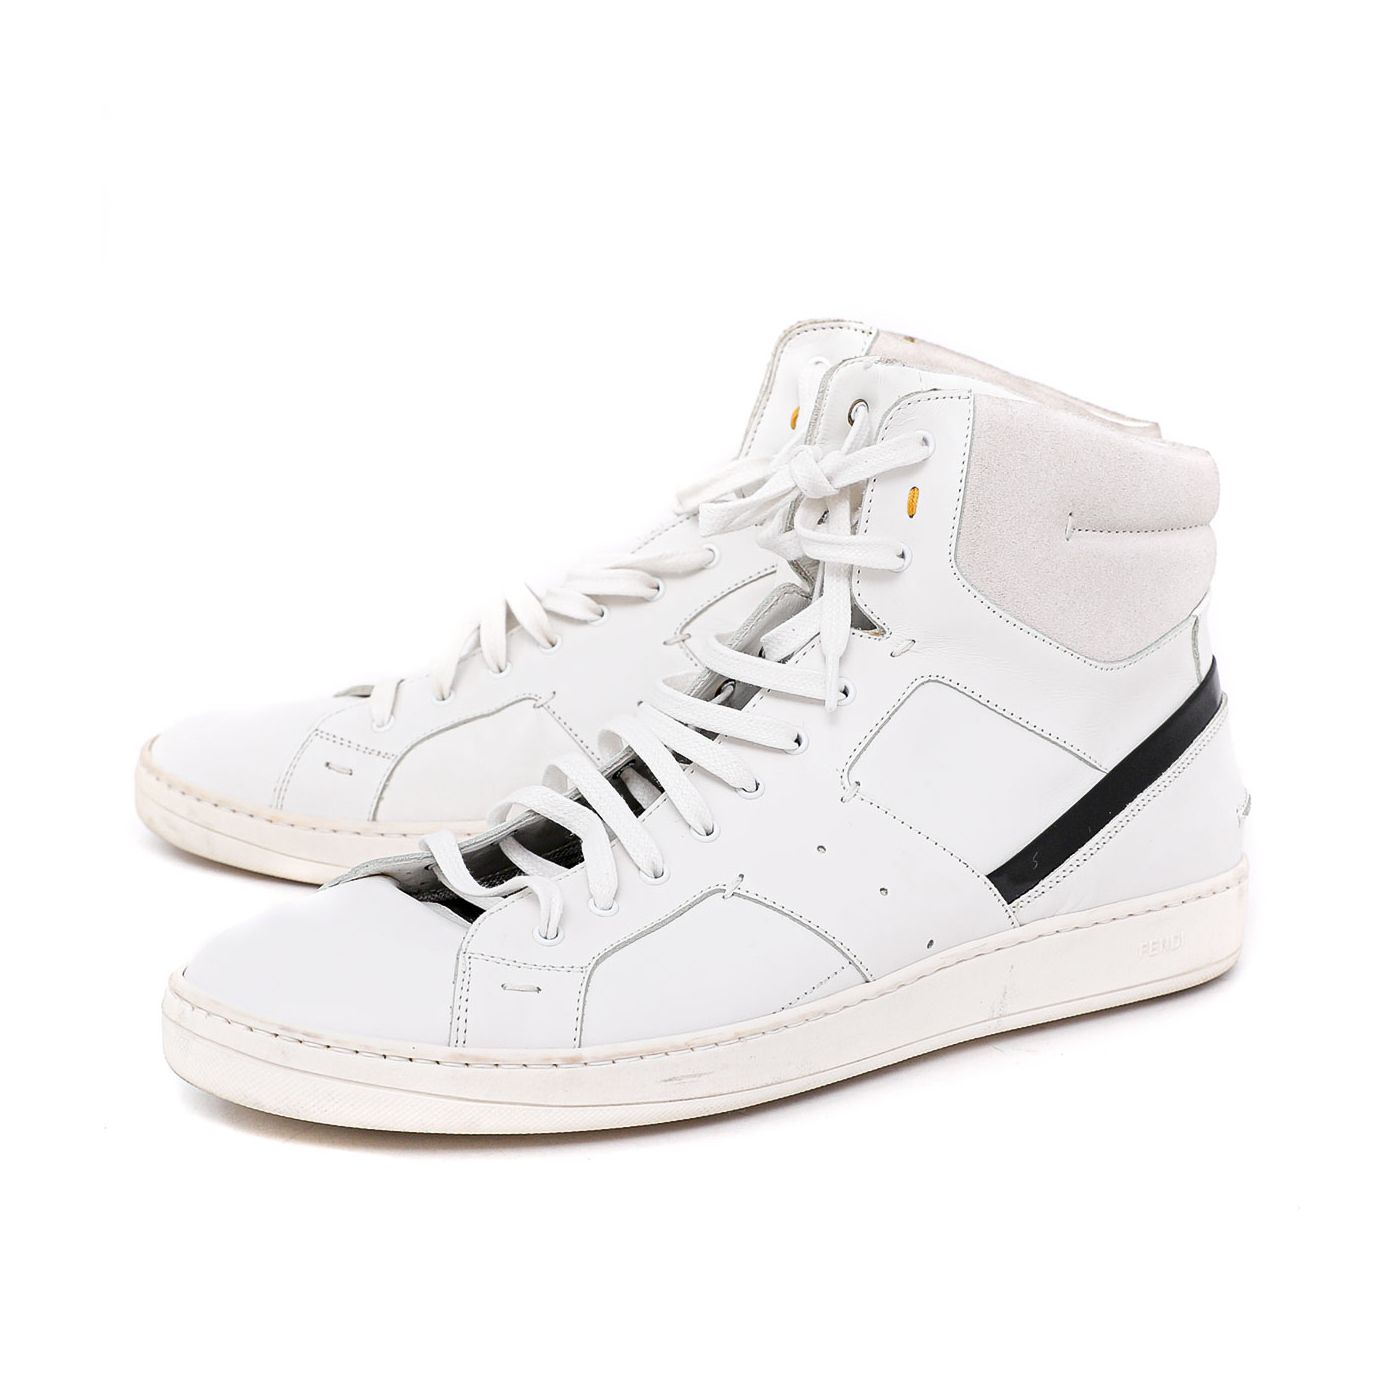 Fendi White Hi Top Sneakers 43